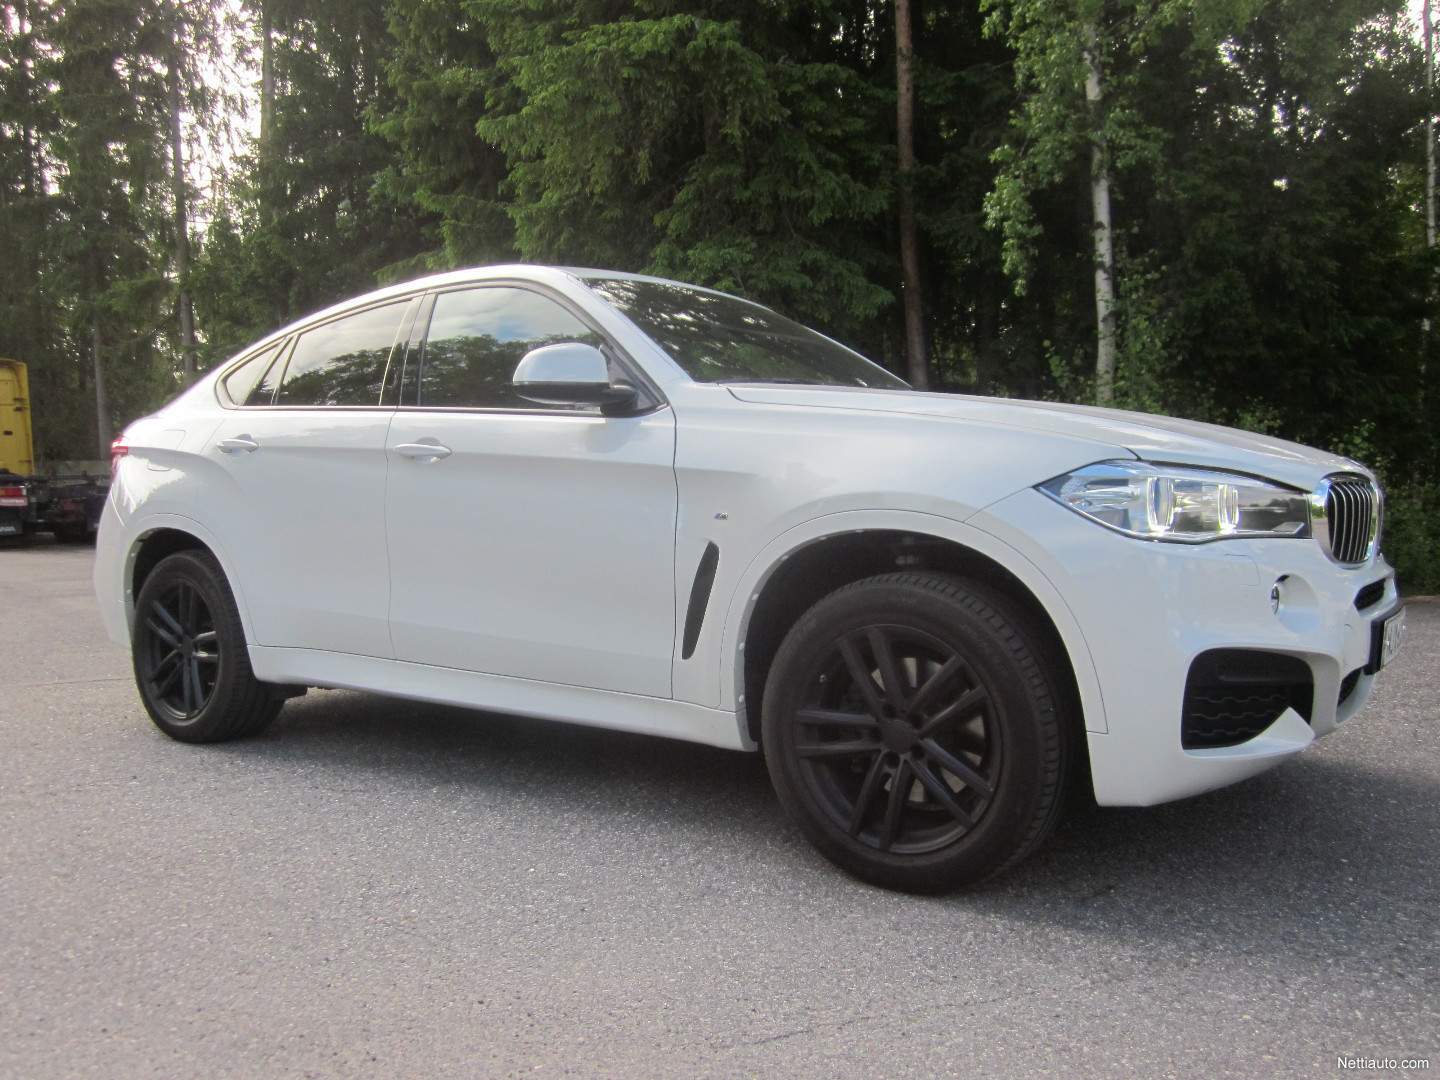 bmw x6 f16 xdrive40d twinpower turbo a x edition 4x4 2015 used vehicle nettiauto. Black Bedroom Furniture Sets. Home Design Ideas